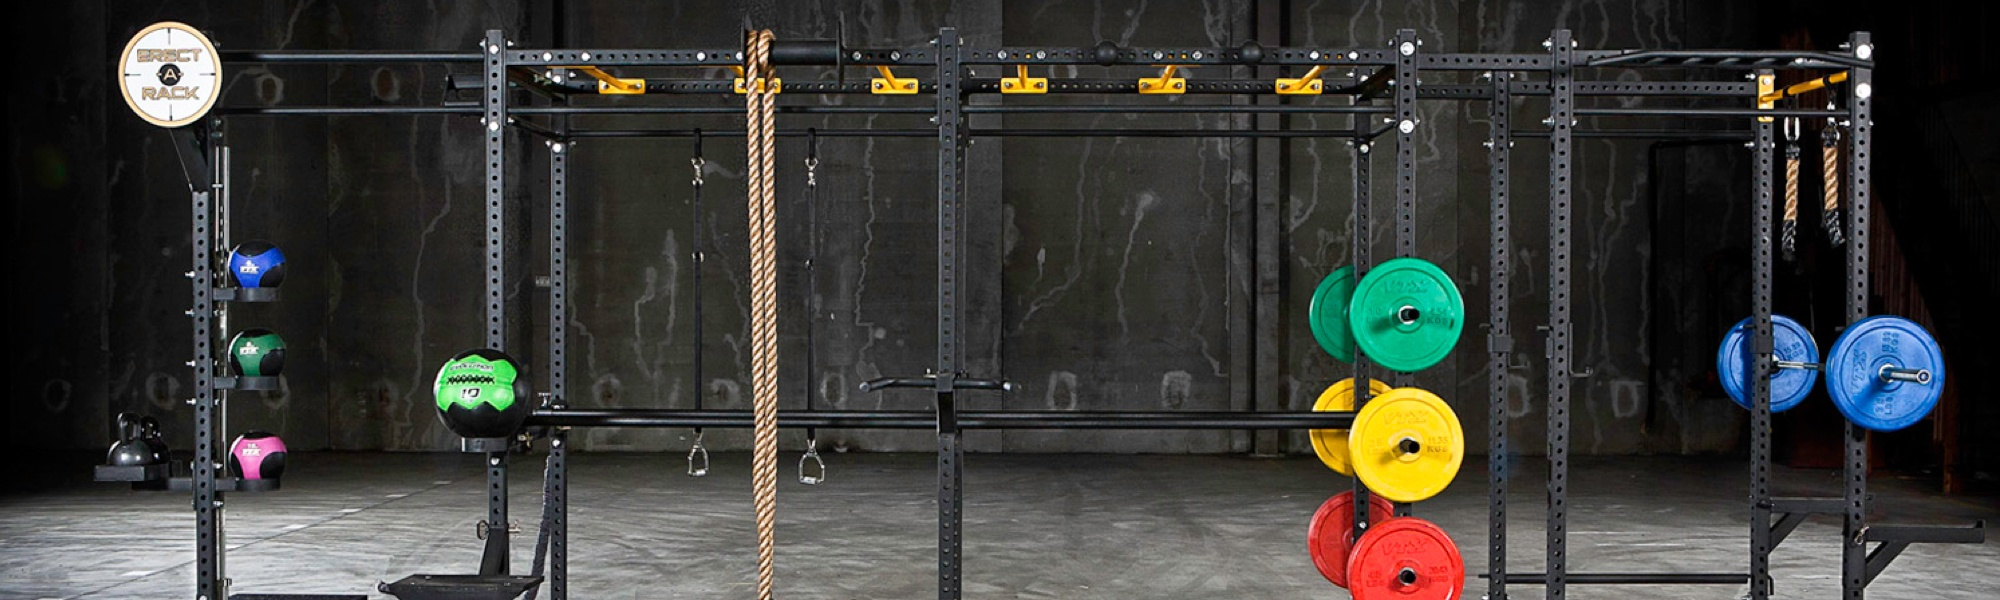 14 Best Power Racks For Home Gym